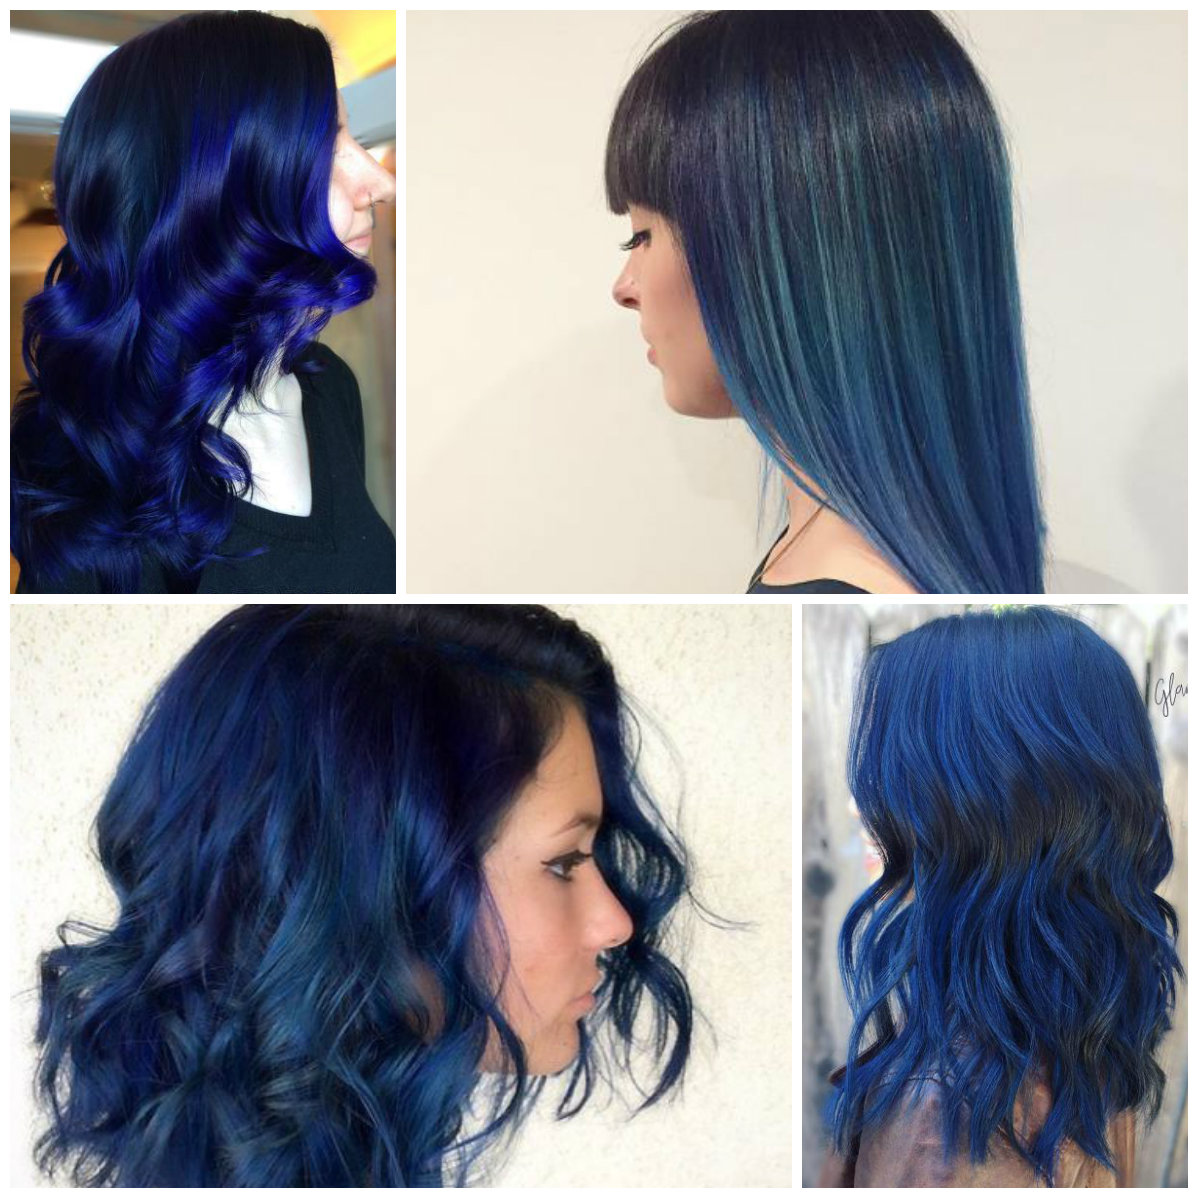 Win Your Hairs Adorning Stares By Coloring Them Blue Hairstyles